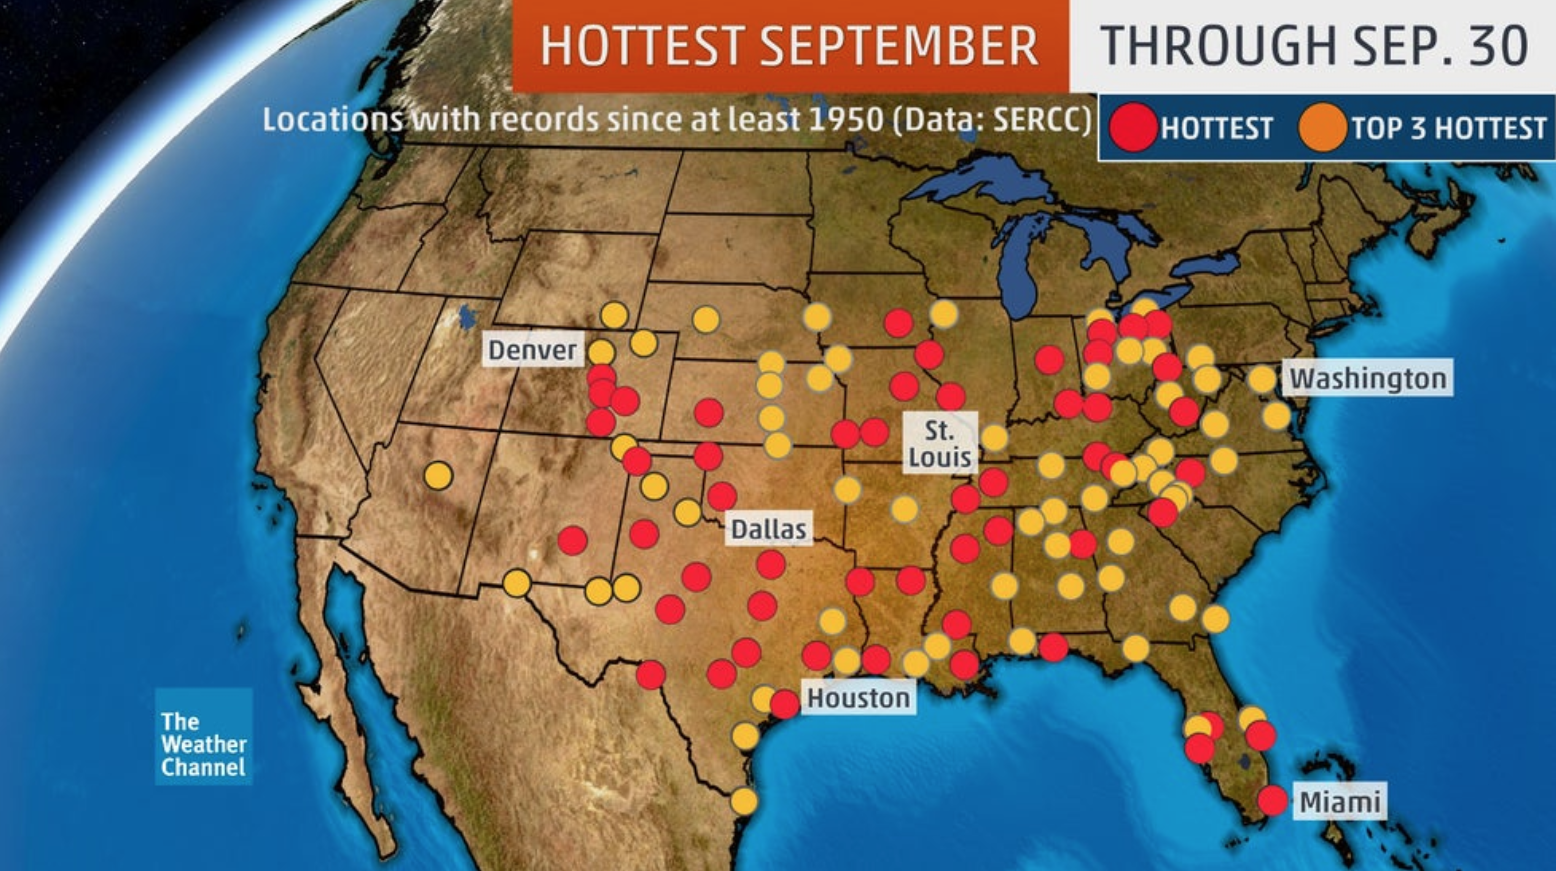 Red dots show locations that had their warmest September on record this year. Orange dots are locations where September 2019 ranked as second- or third-warmest on record. (Data: NOAA/SERCC)